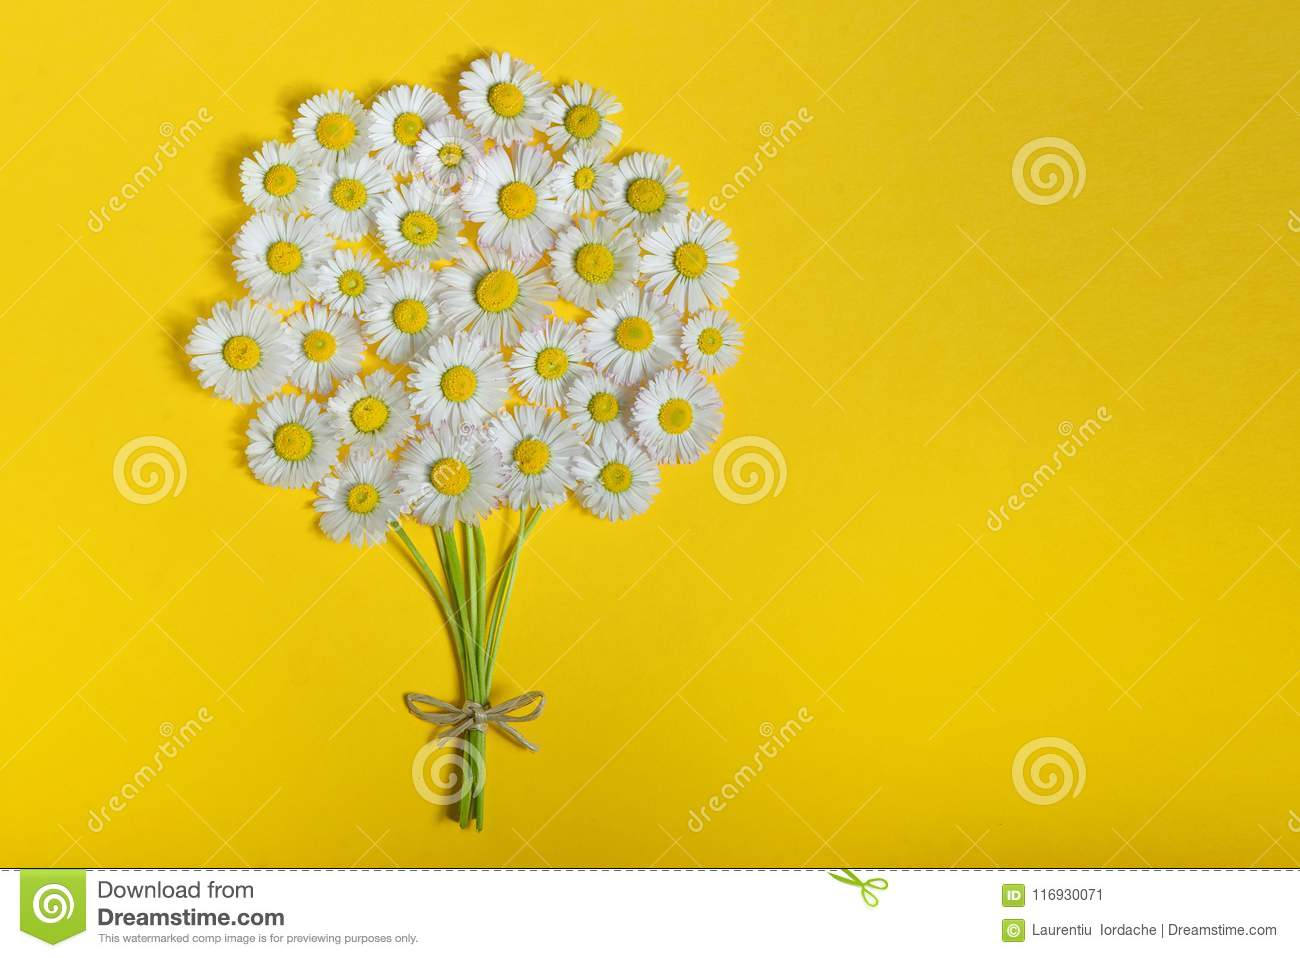 Abstract Daisy Flower Bouquet Stock Image Image Of Margarita